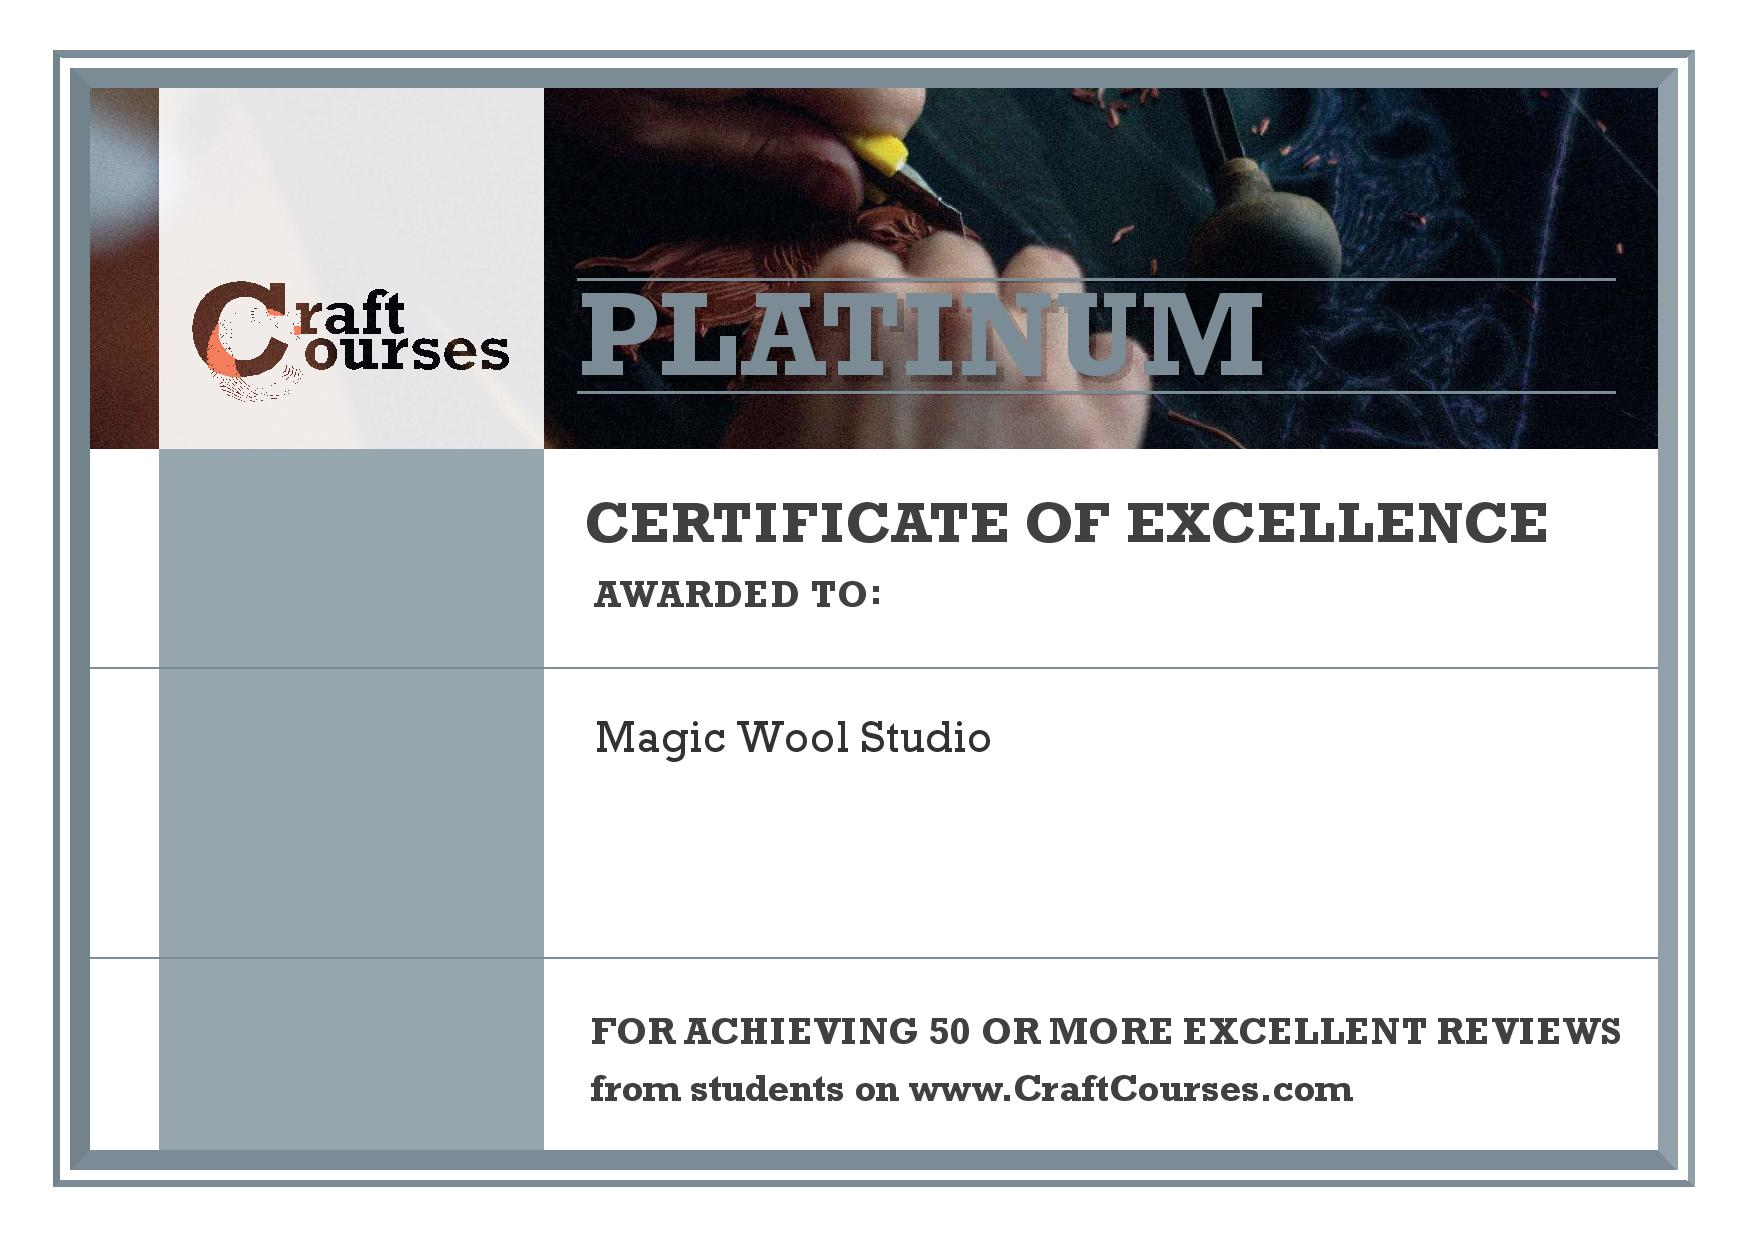 Magic Wool Studio Has Been Awarded A Certificate Of Excellence For